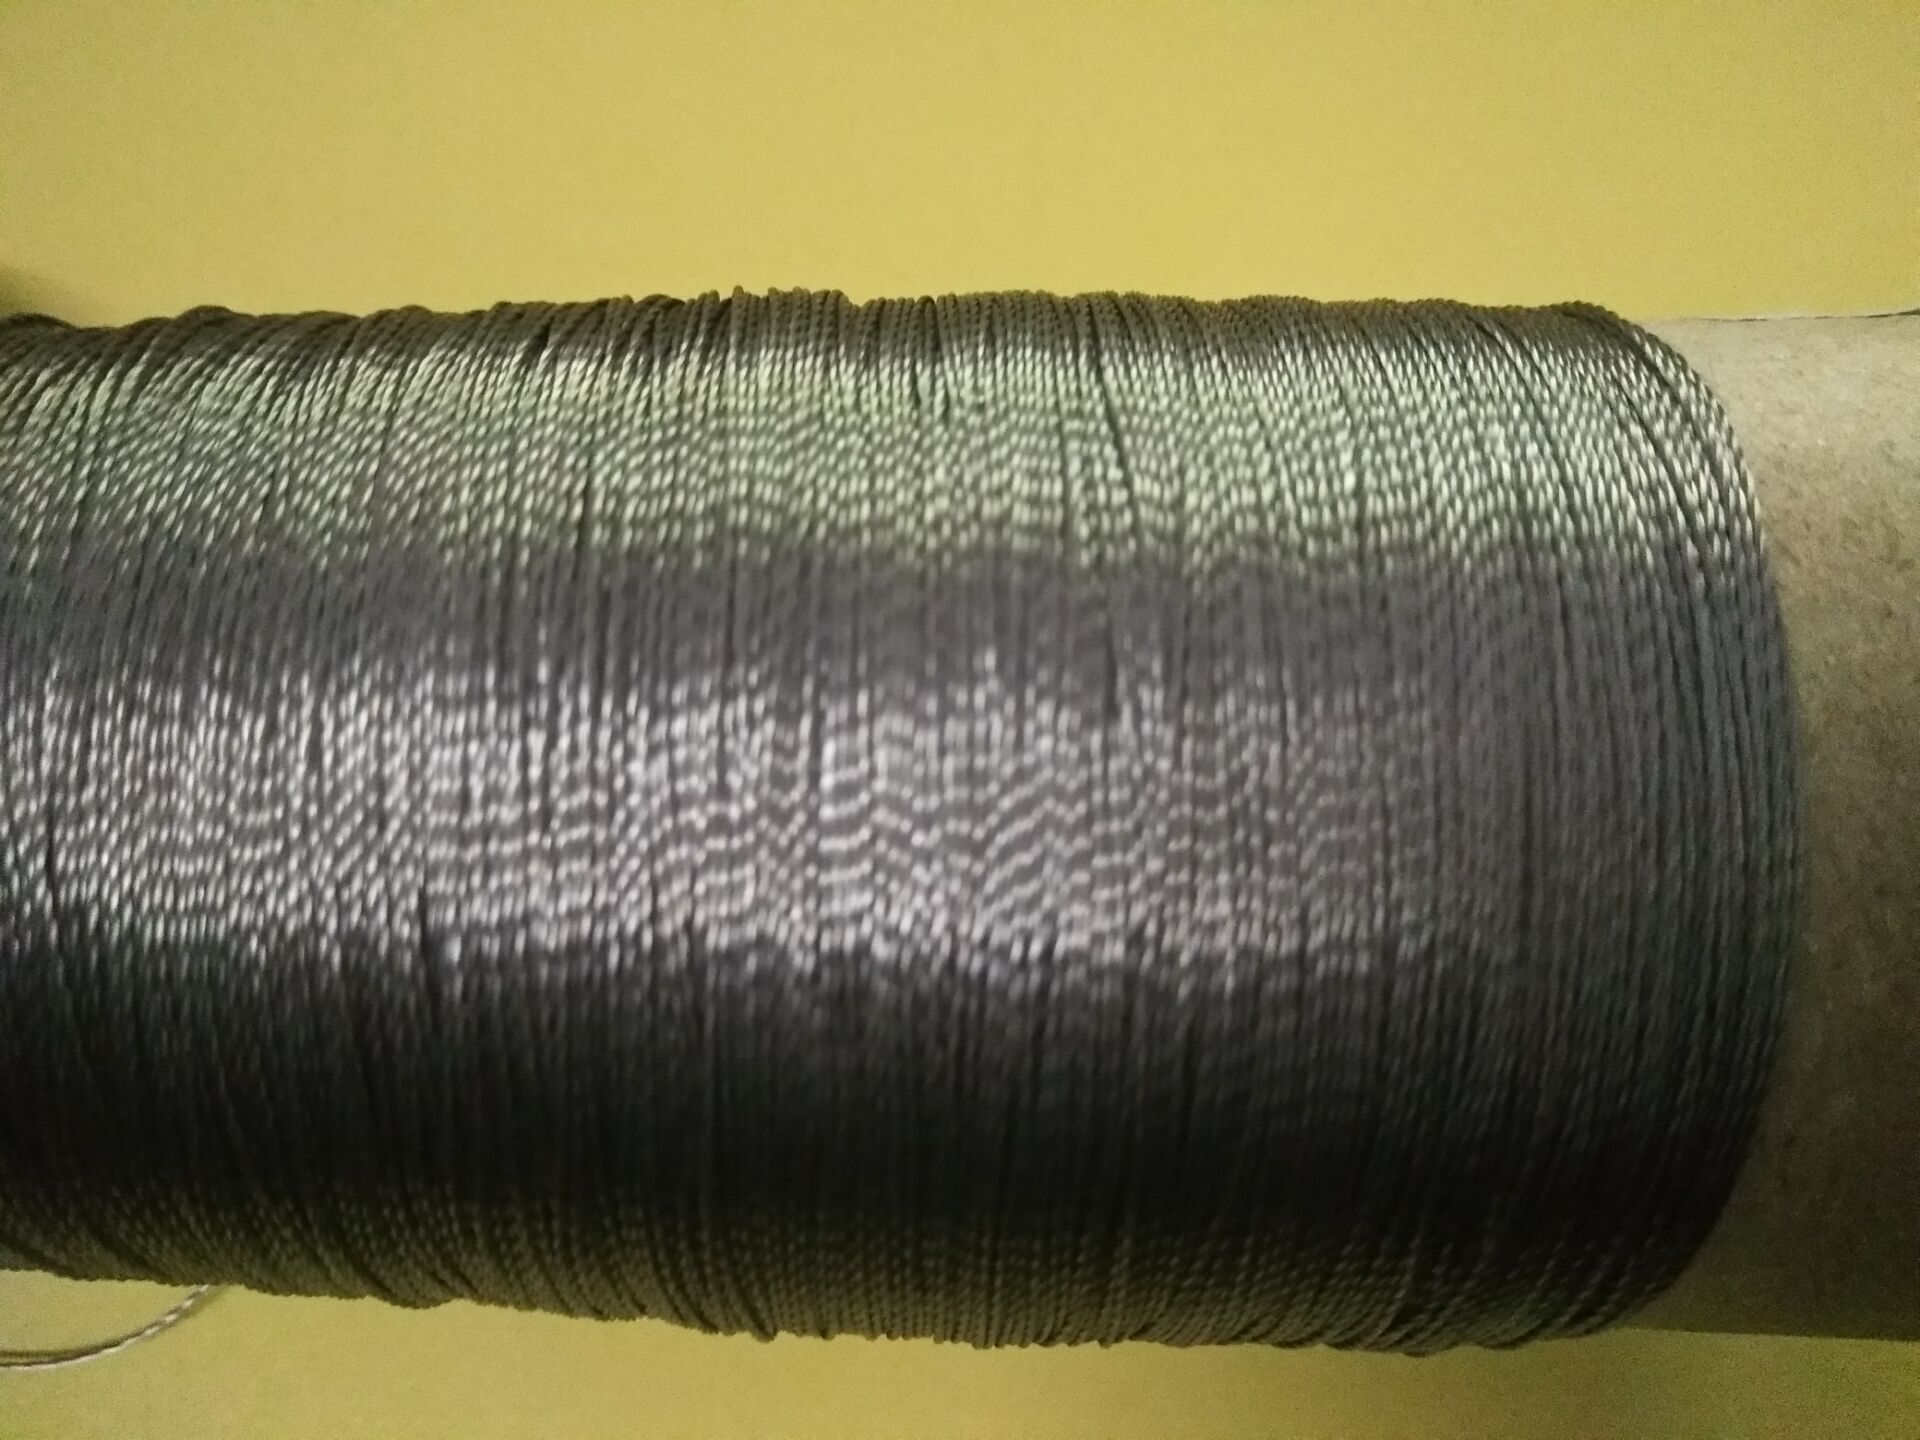 3 ply stainless steel thread